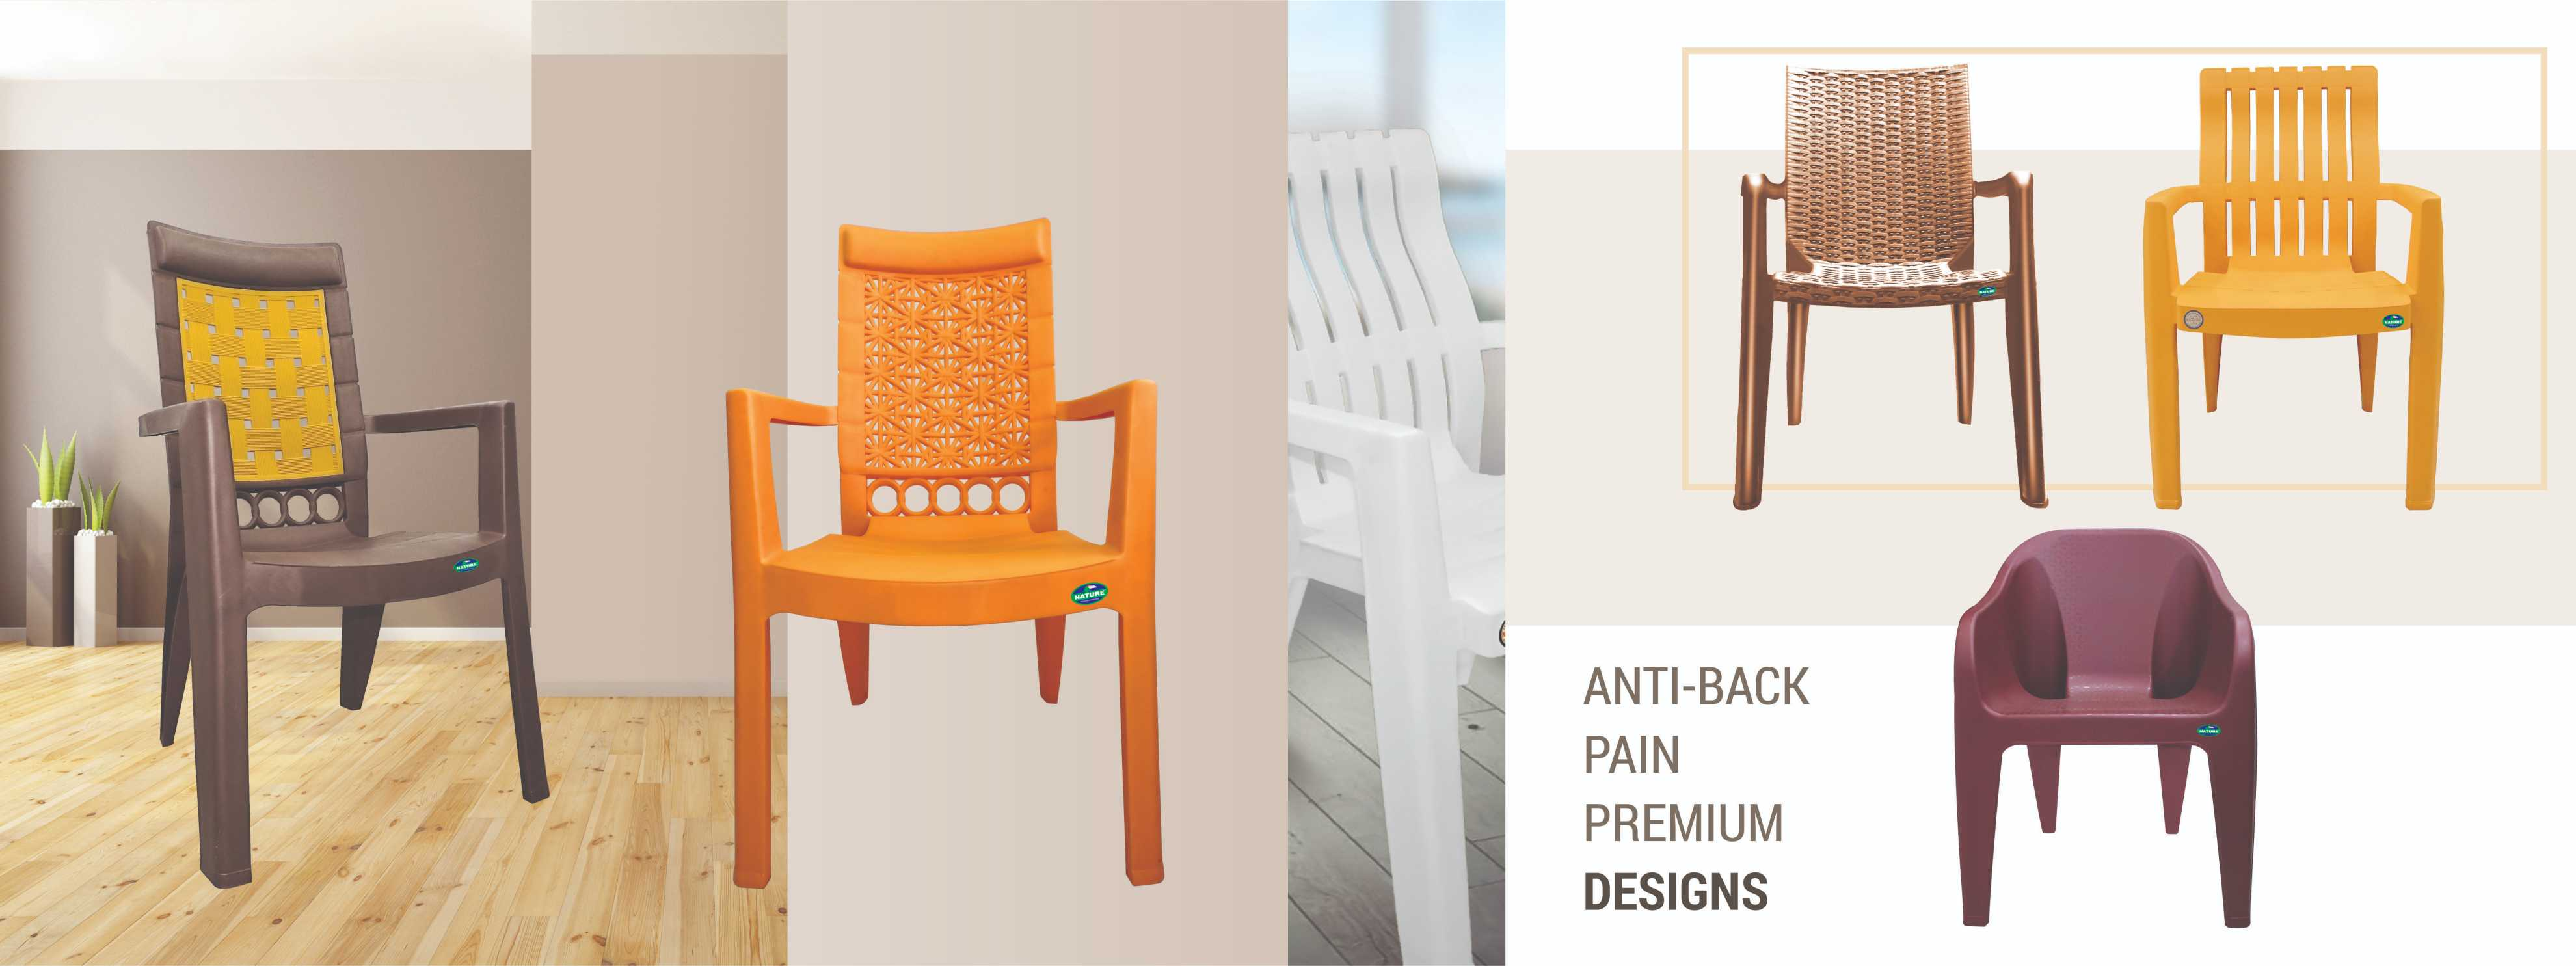 Outstanding Century Polyplast Industries Patna Caraccident5 Cool Chair Designs And Ideas Caraccident5Info